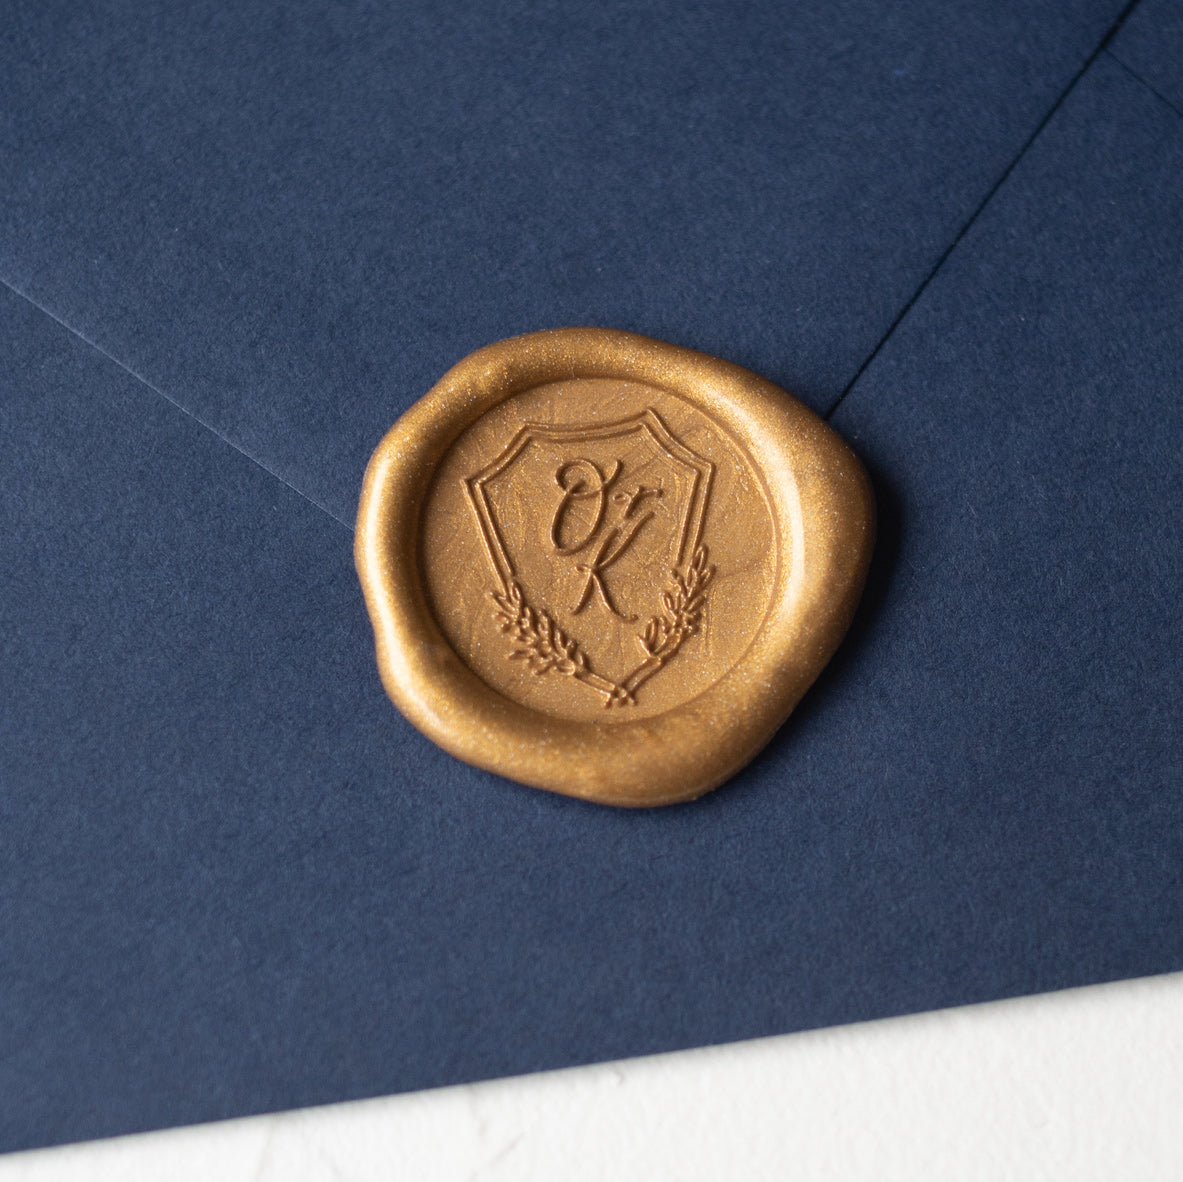 Bespoke Monogram Wax Seal